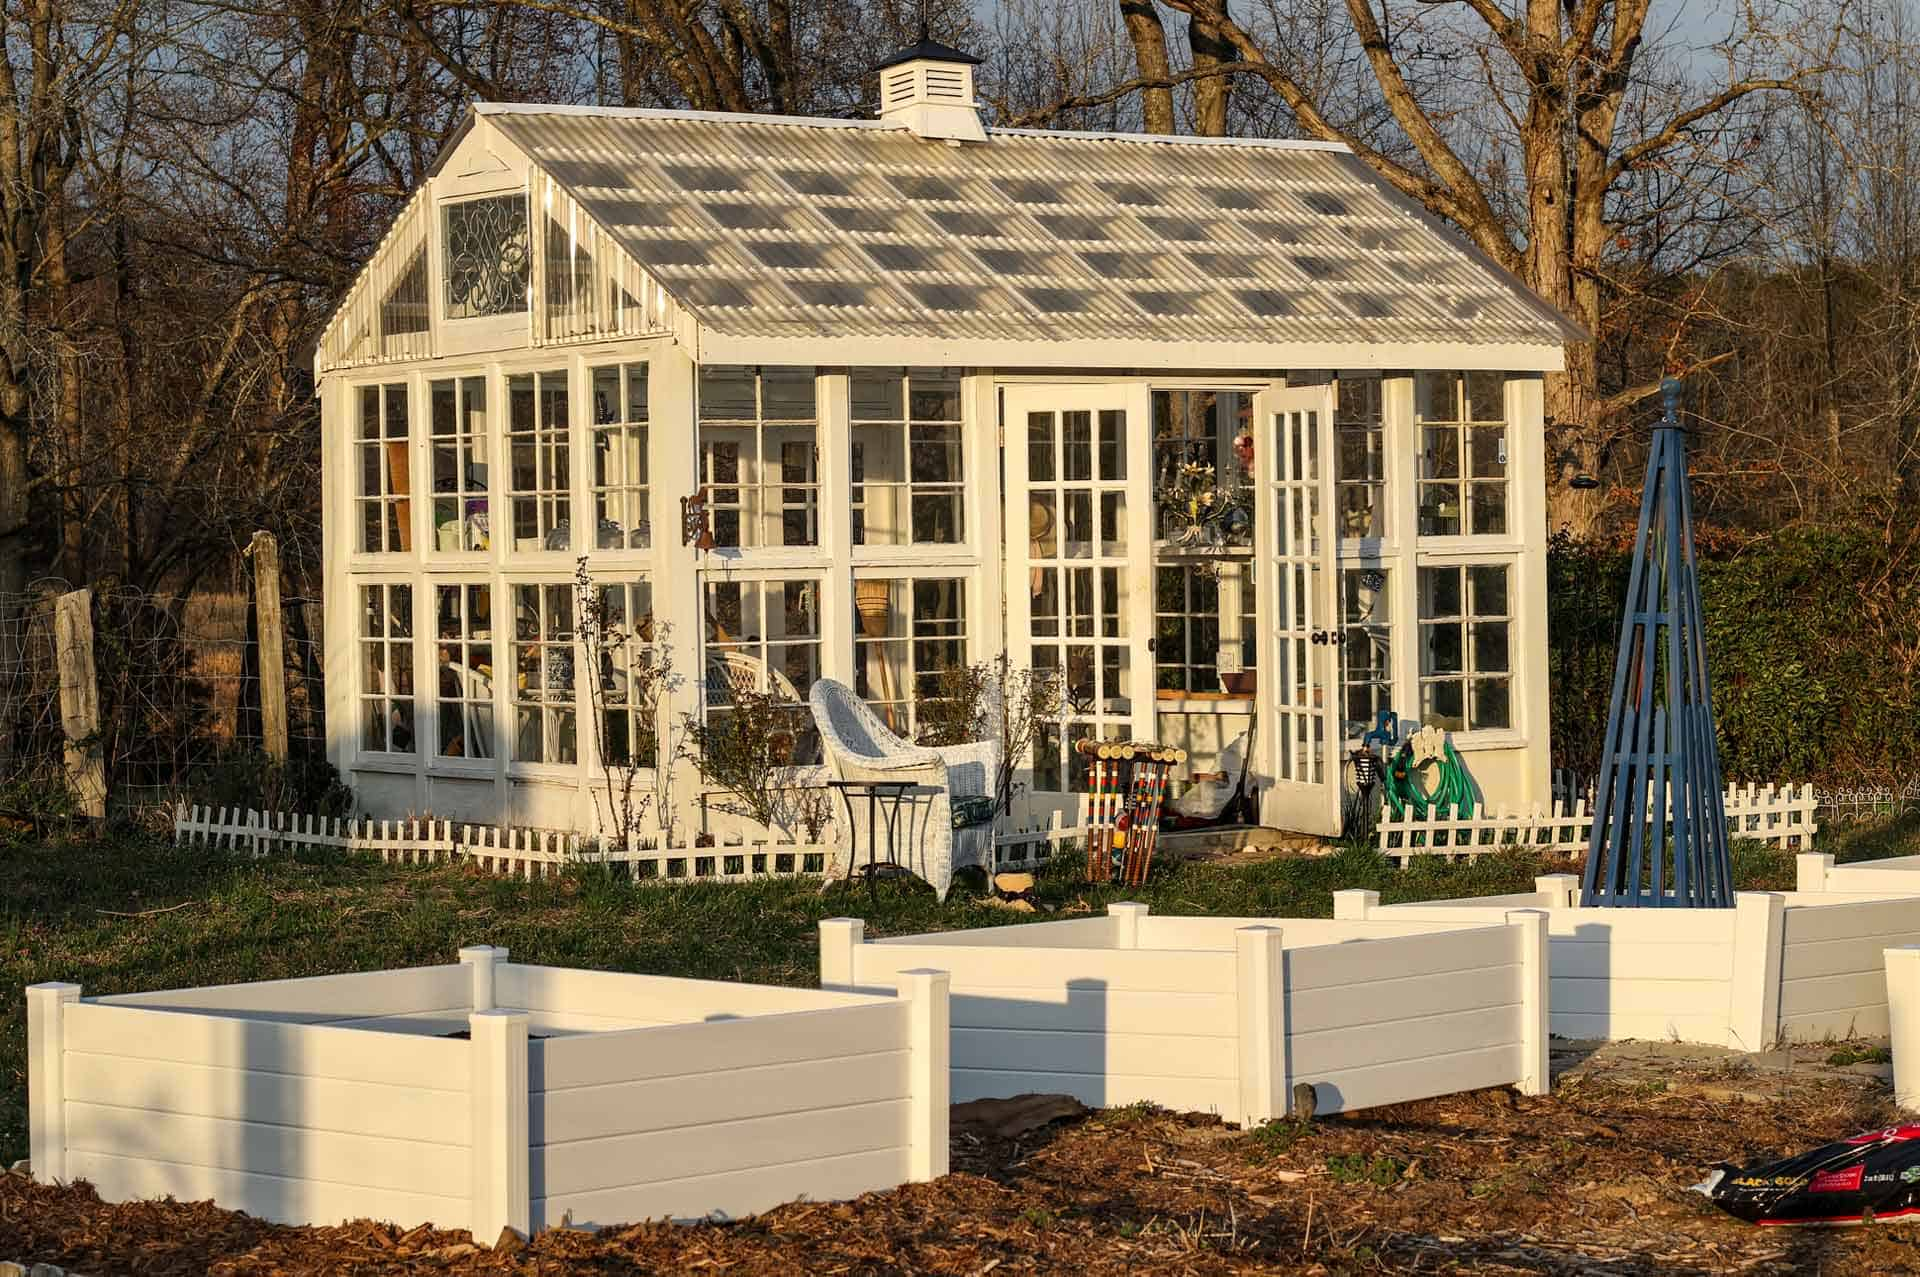 A freestanding greenhouse of individual panes of glass